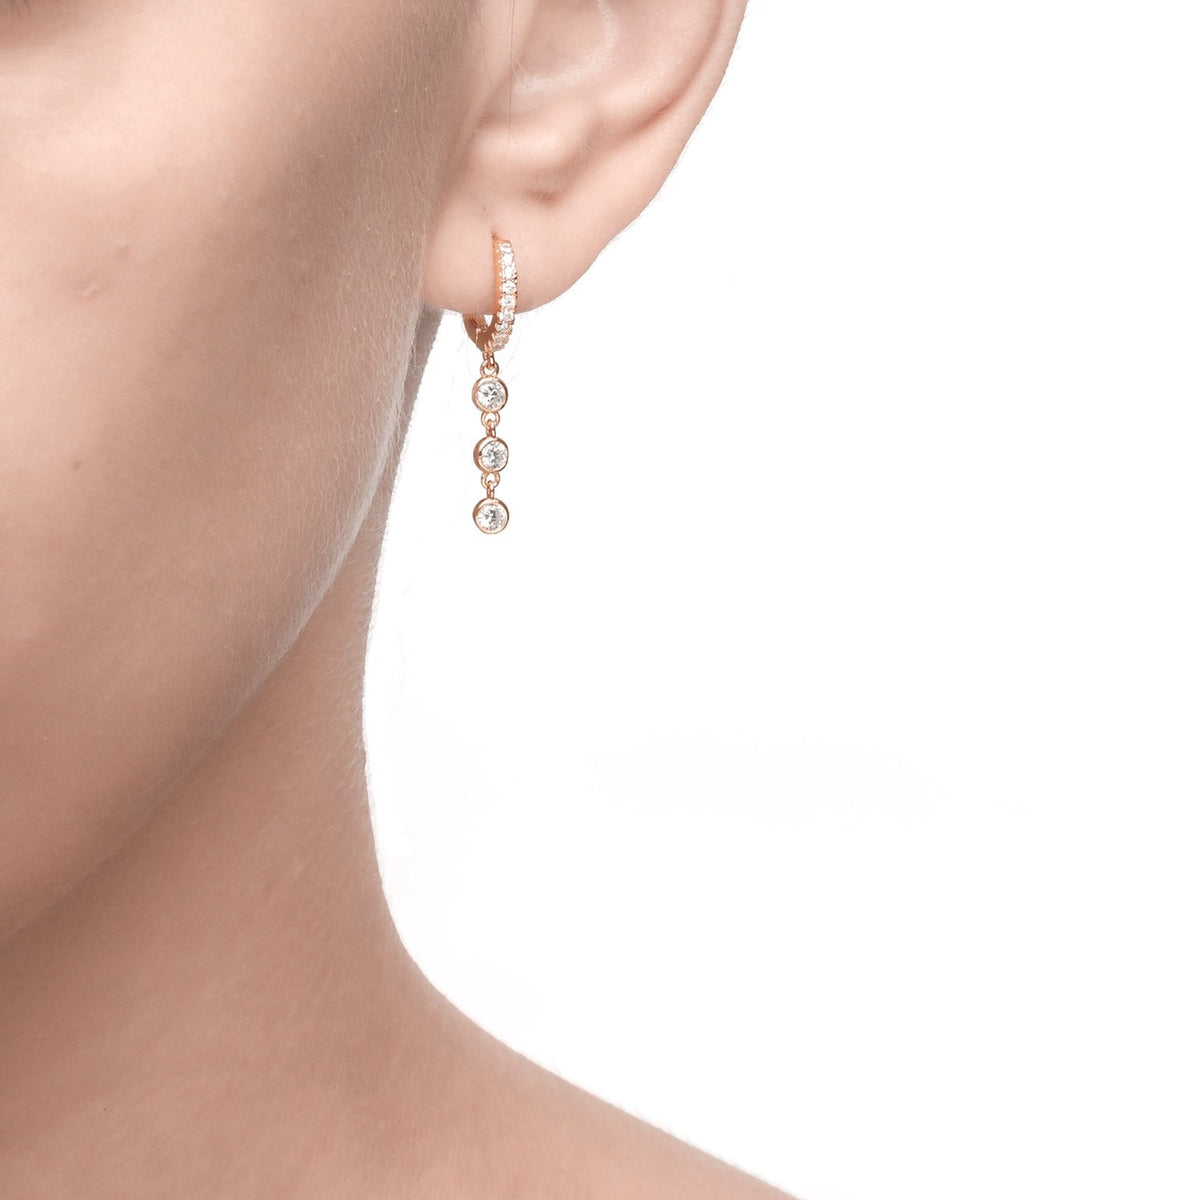 Fortuna | Bari Earrings | 925 Silver | White CZ | Rose Gold Plated